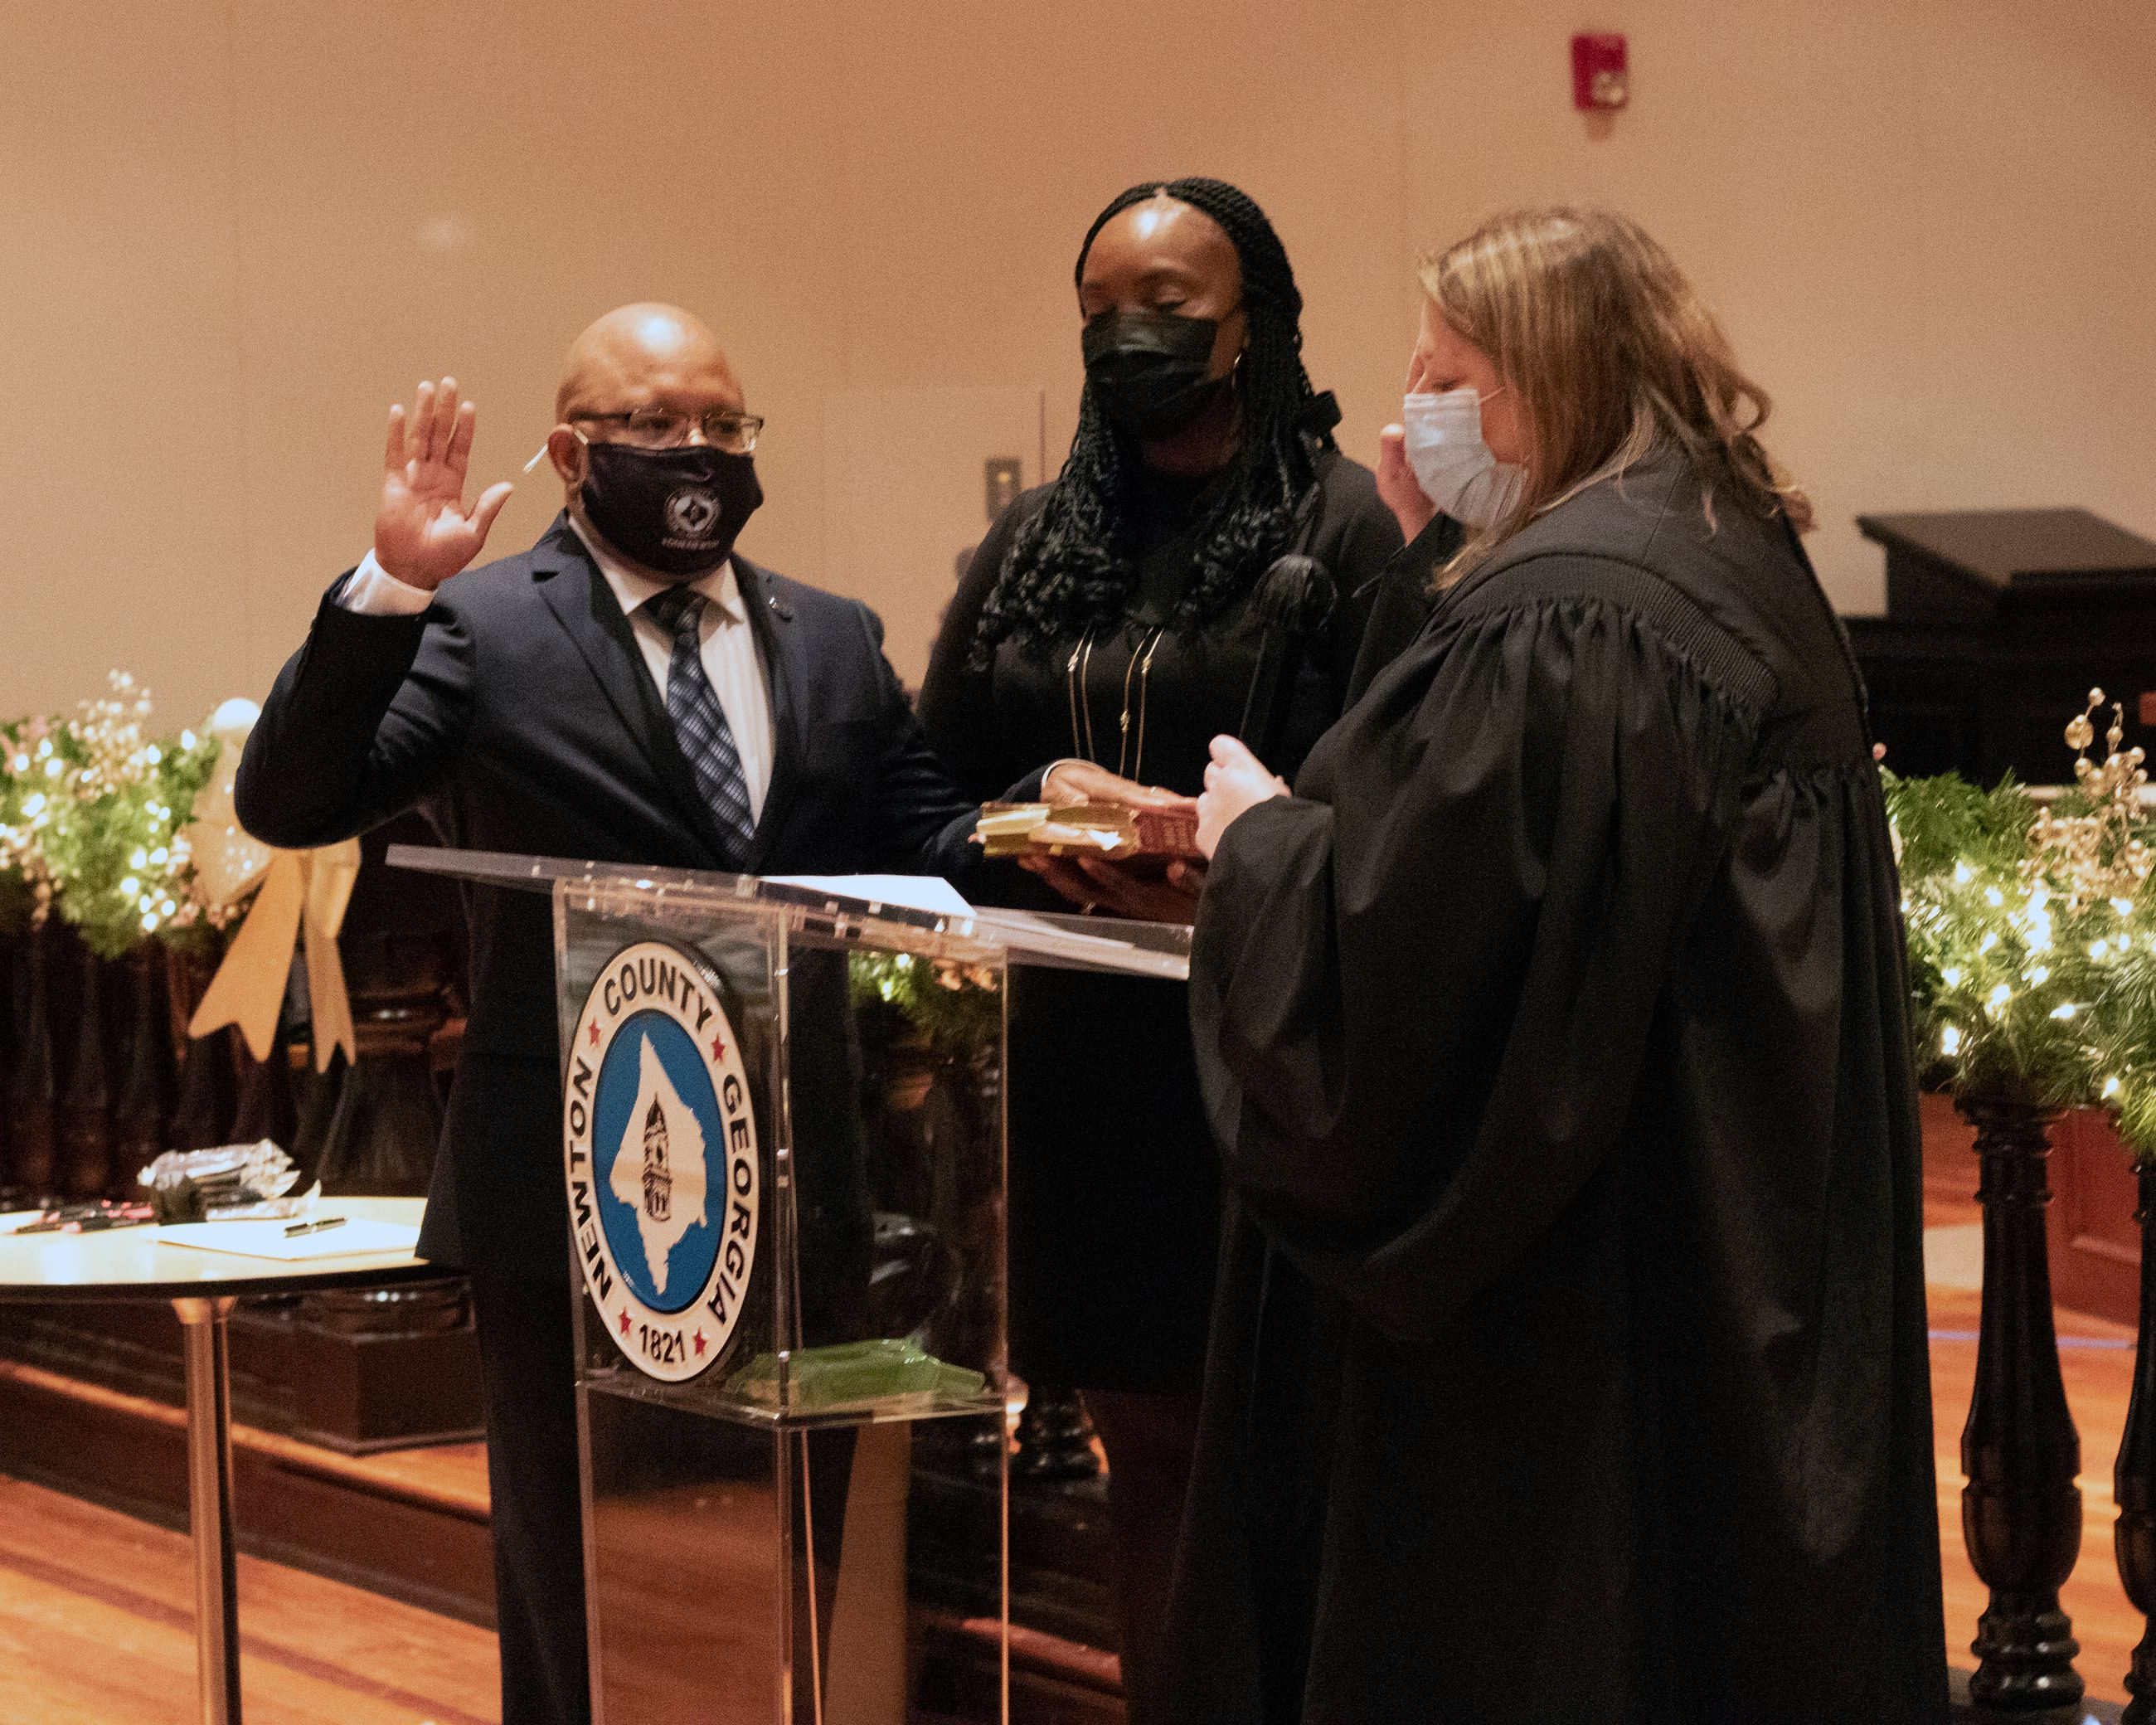 Image of 2020 swearing in Marcus Jordan news